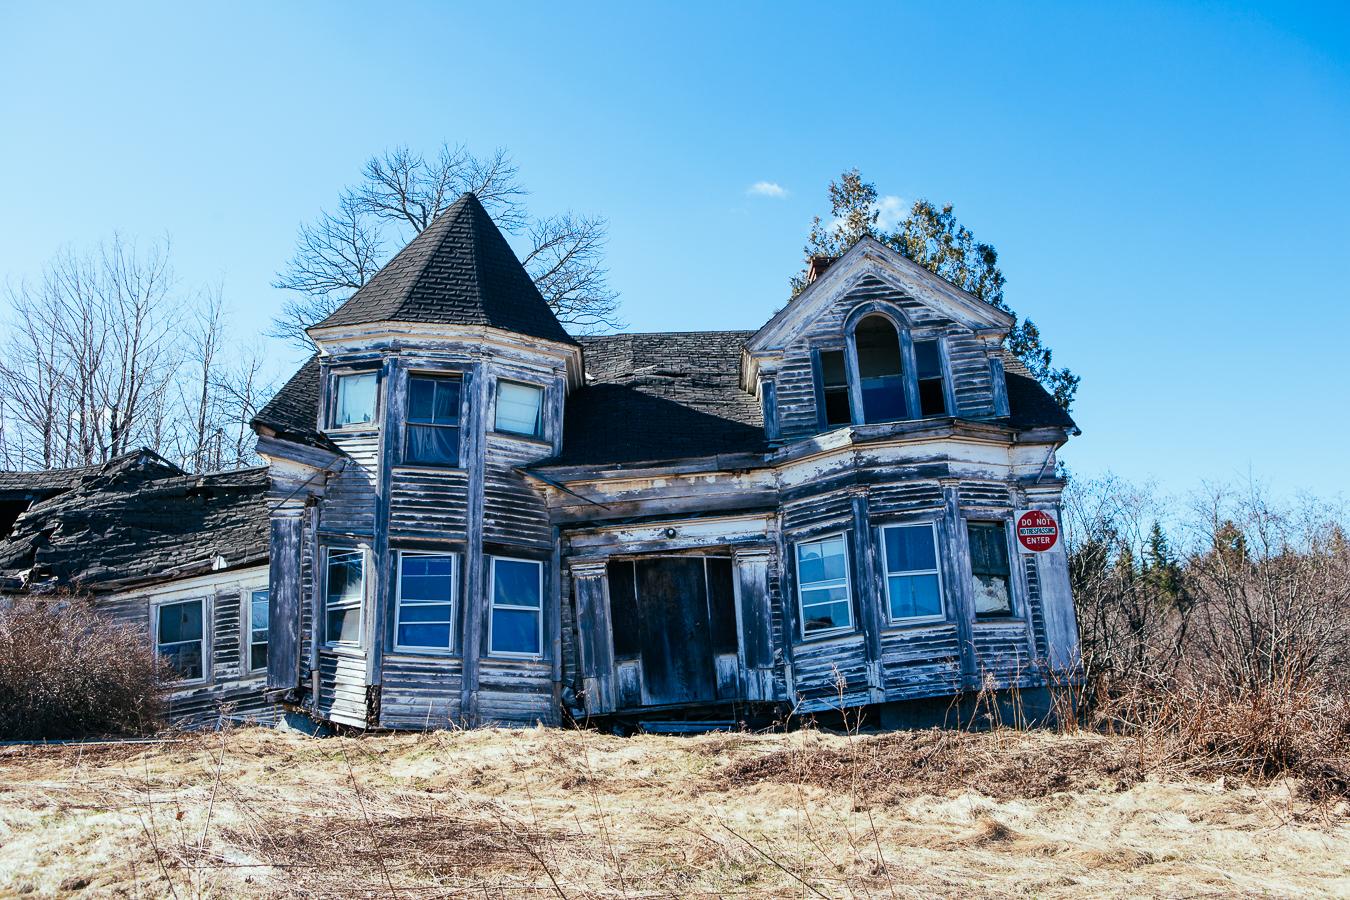 This would be a great horror film set. Imagine a full mooned night, a cold wind, and an axe yielding psycho chasing you...AHHHHHH!